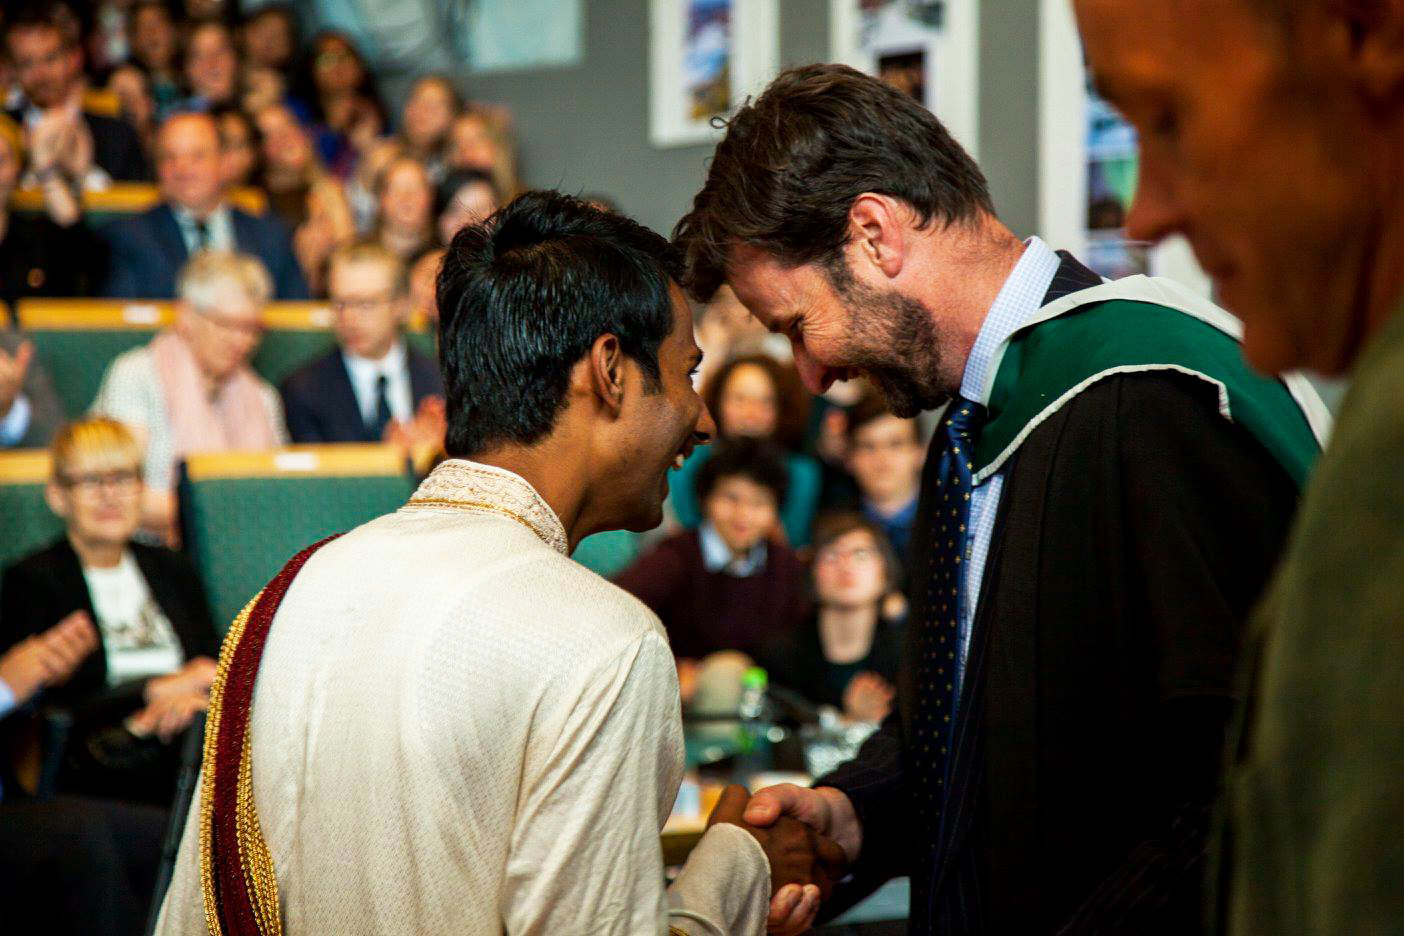 Receiving the Diploma during the ceremony